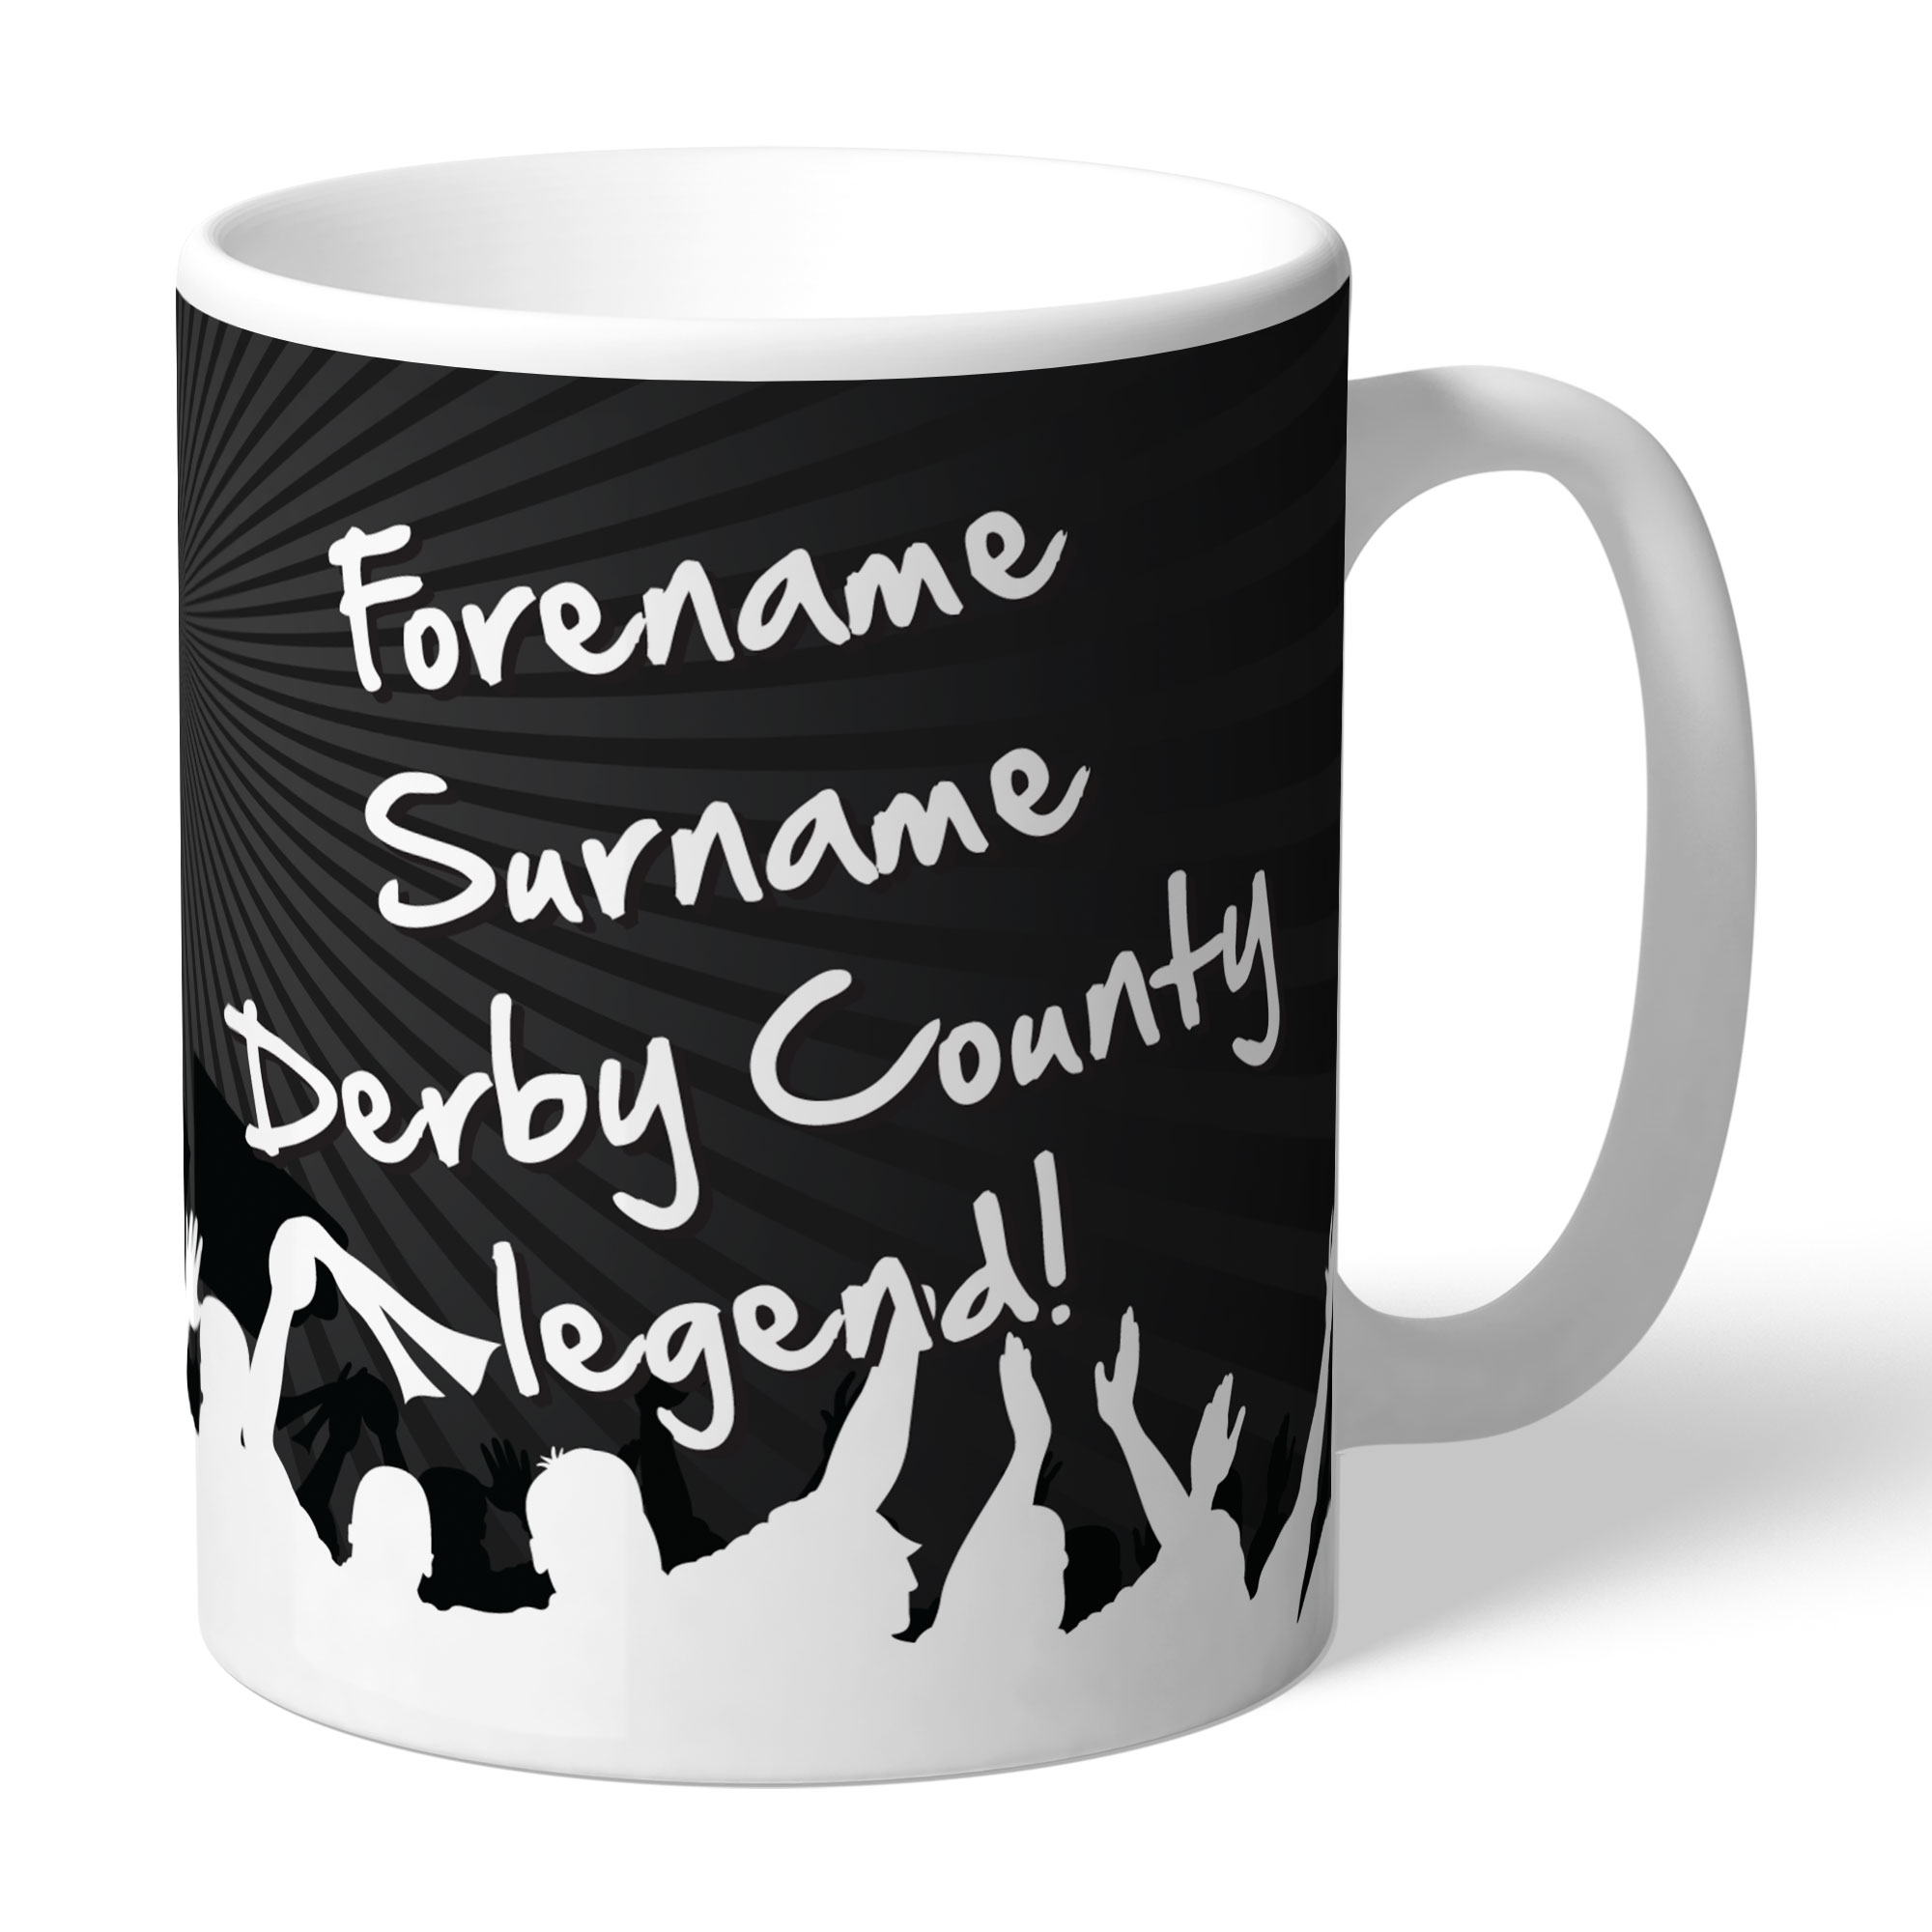 Derby County Legend Mug